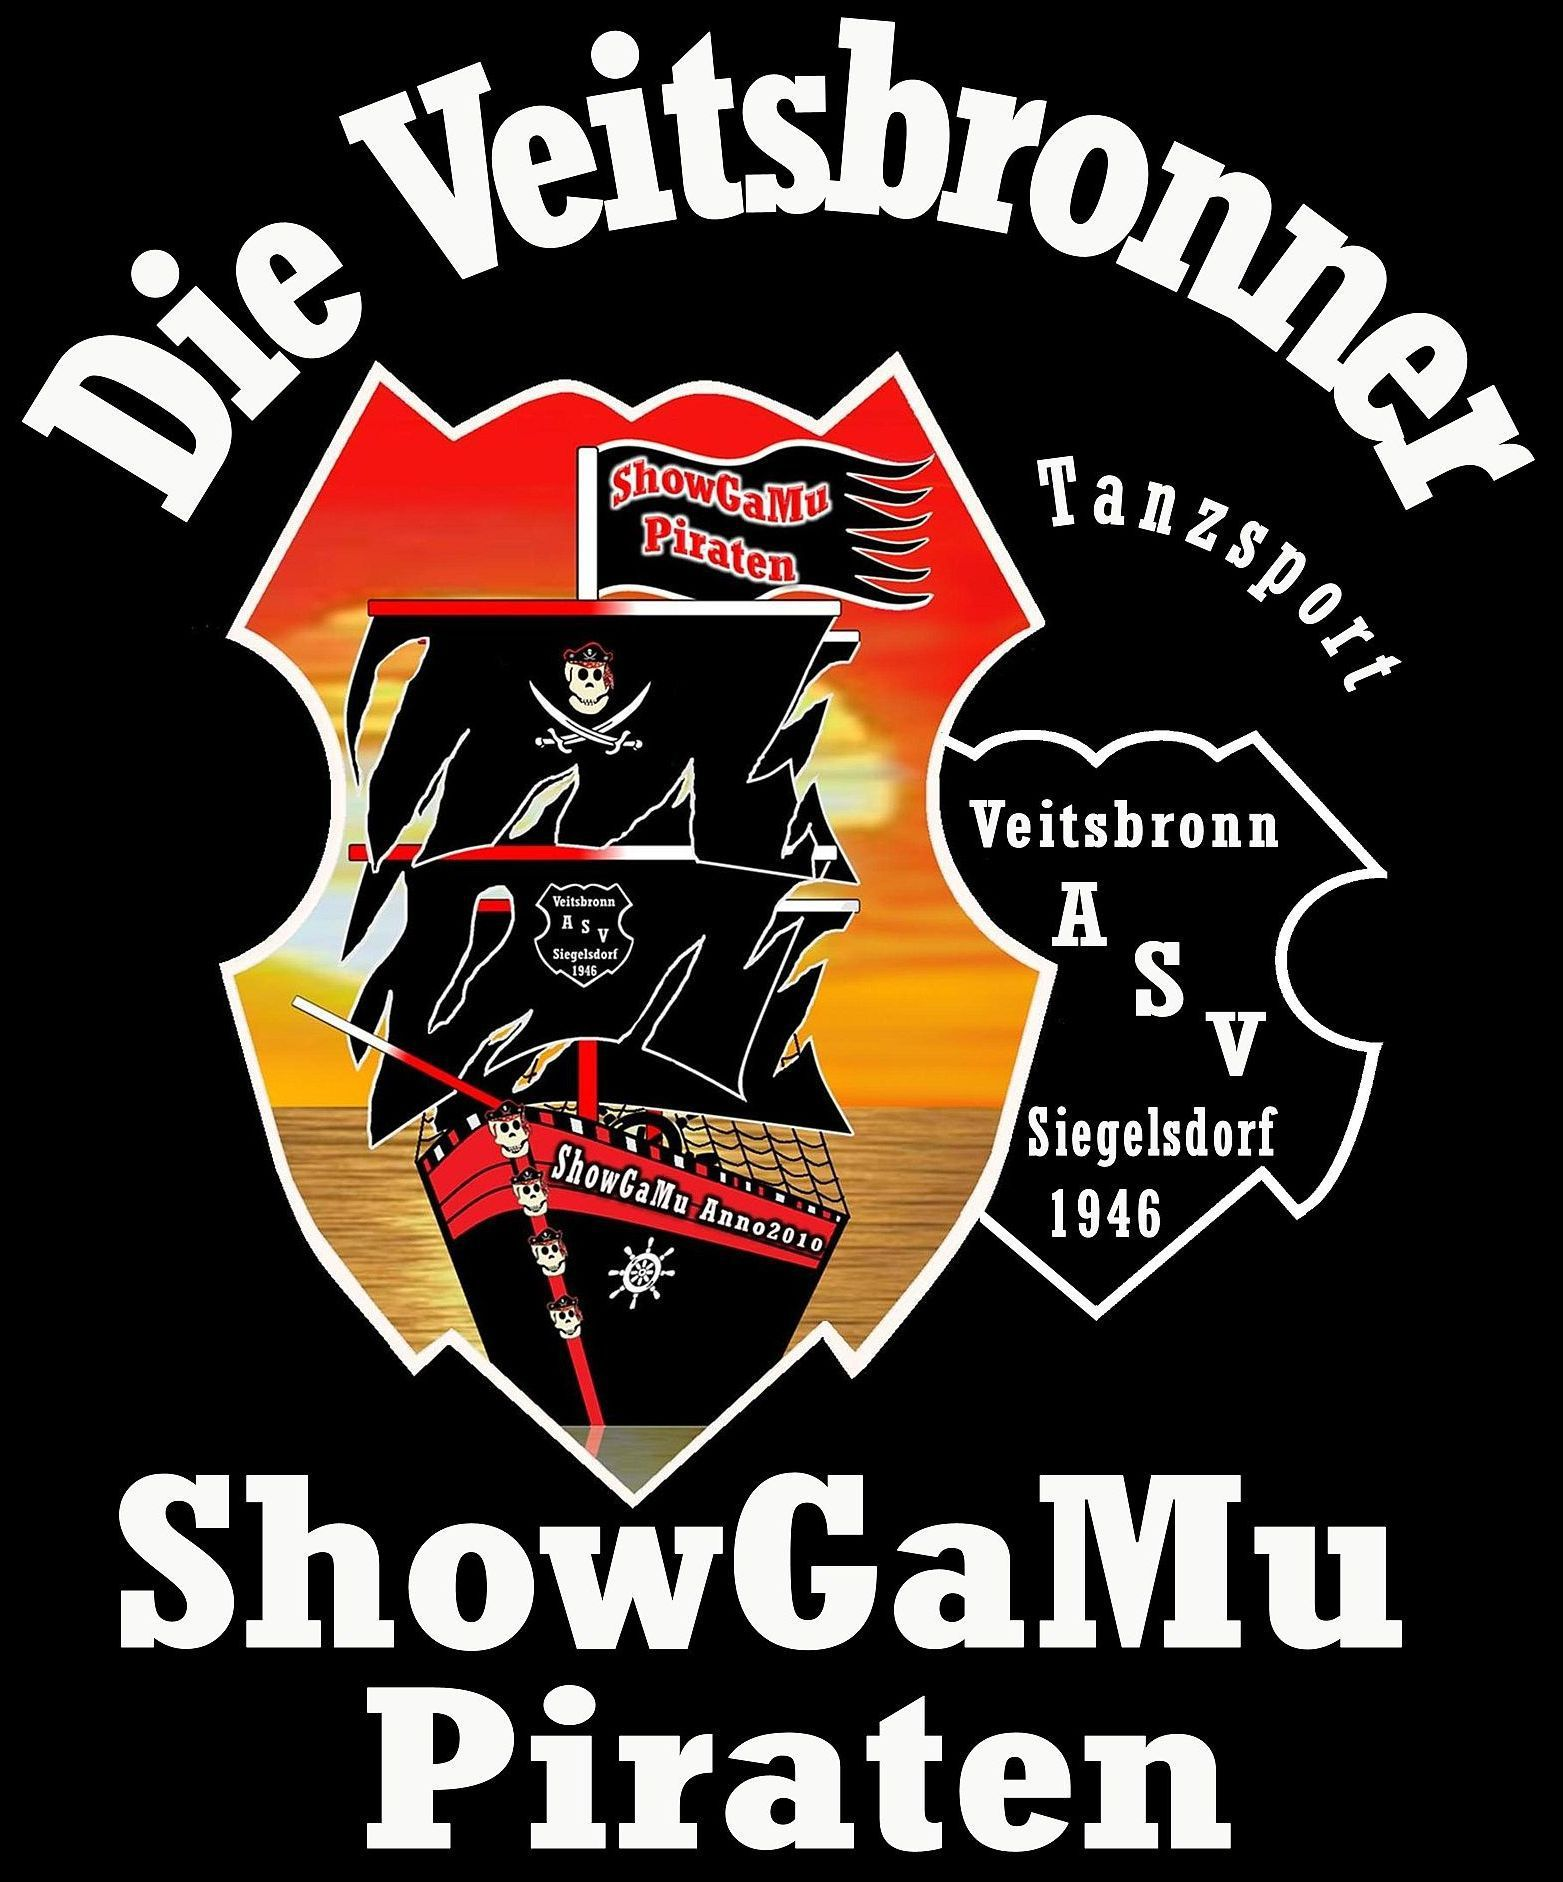 ShowGaMu Piraten